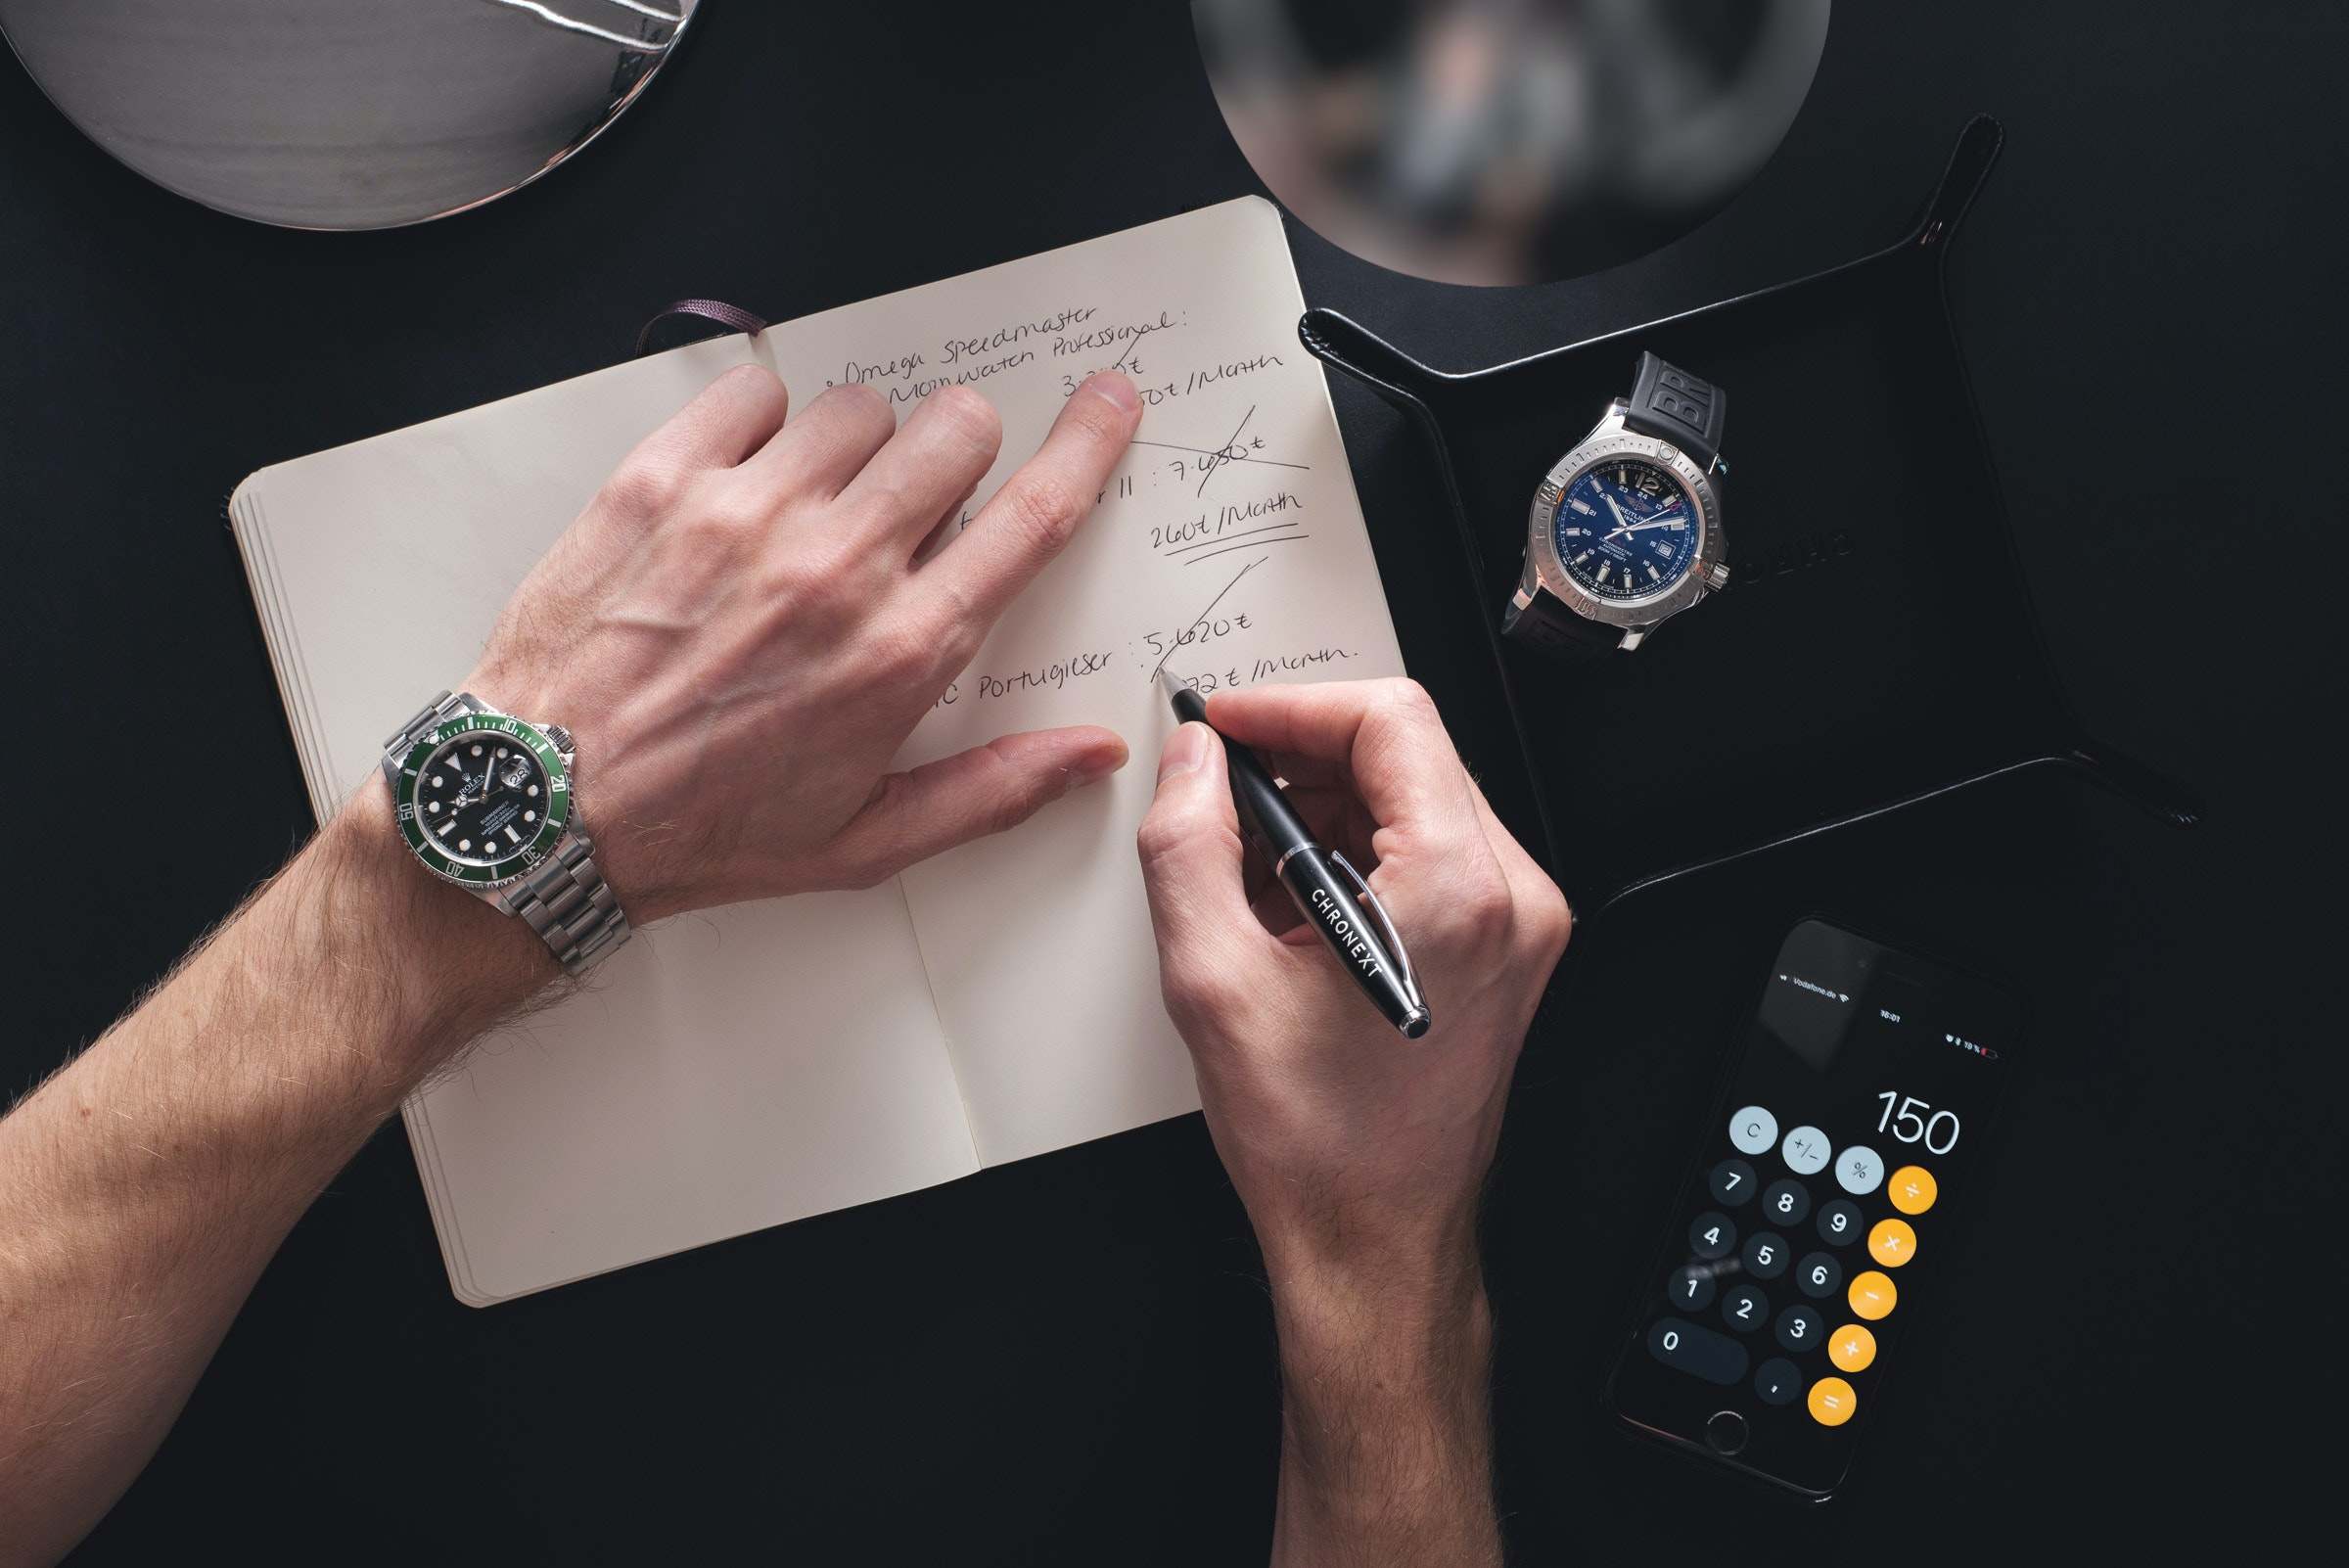 Pay on your own terms: how to finance a dream watch